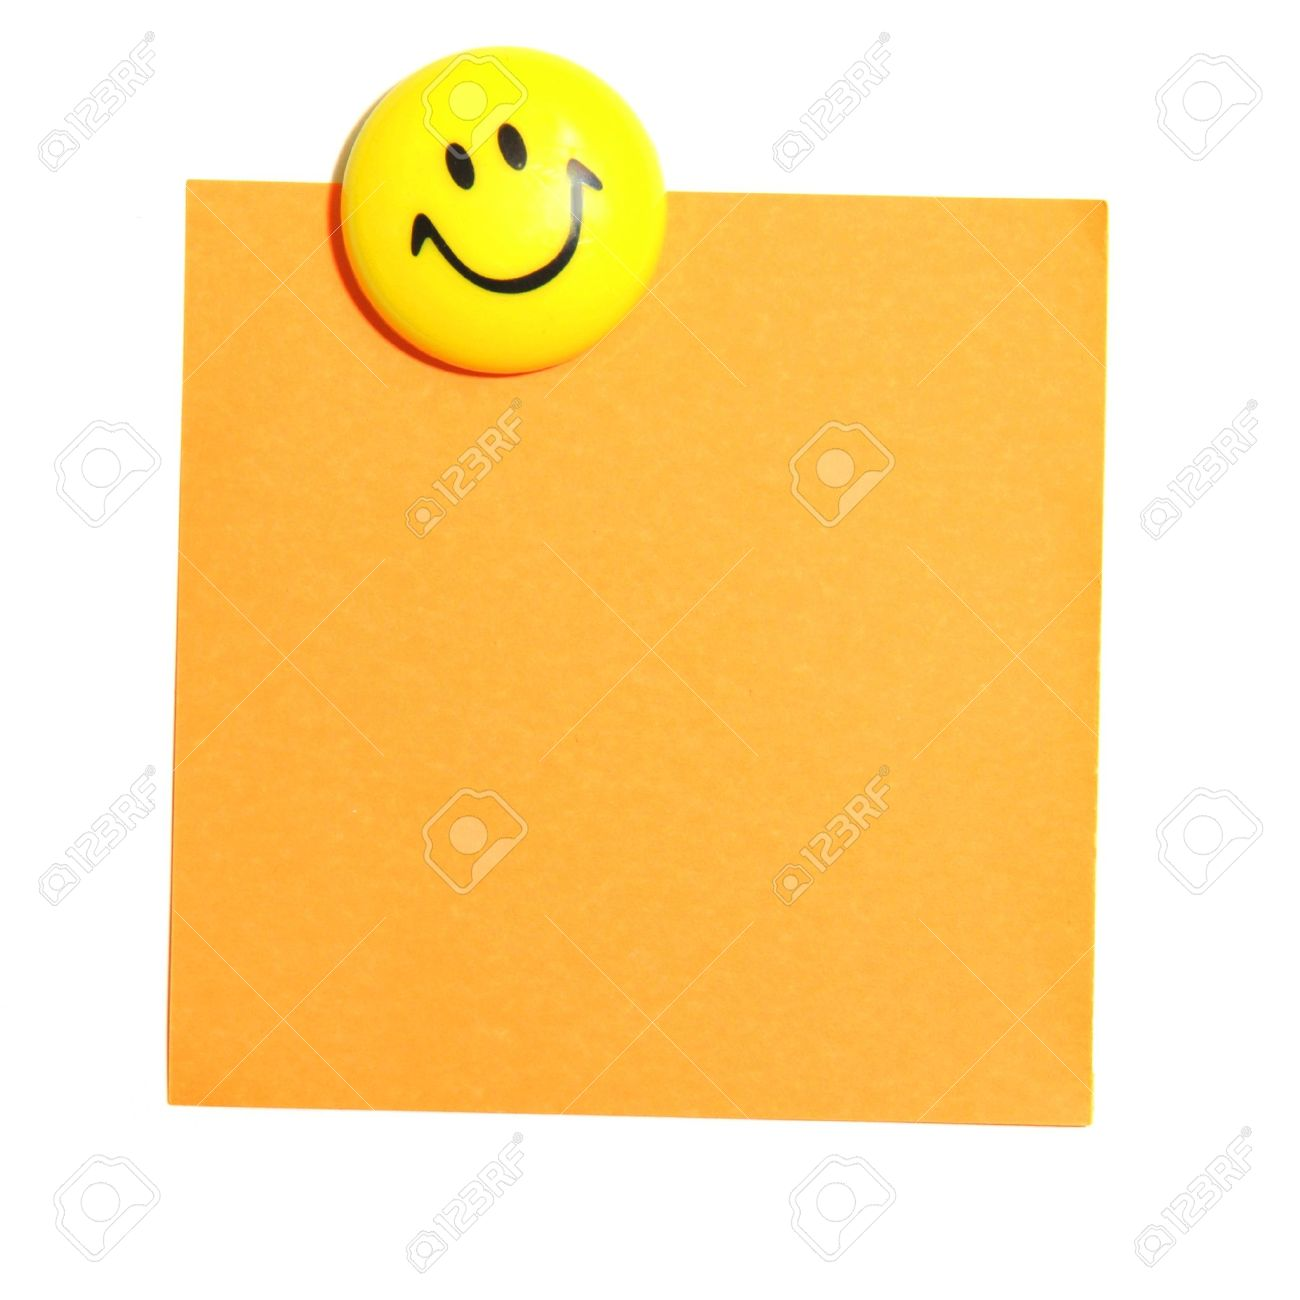 Smiley Face And Blank Paper With Copyspace For Your Text Message